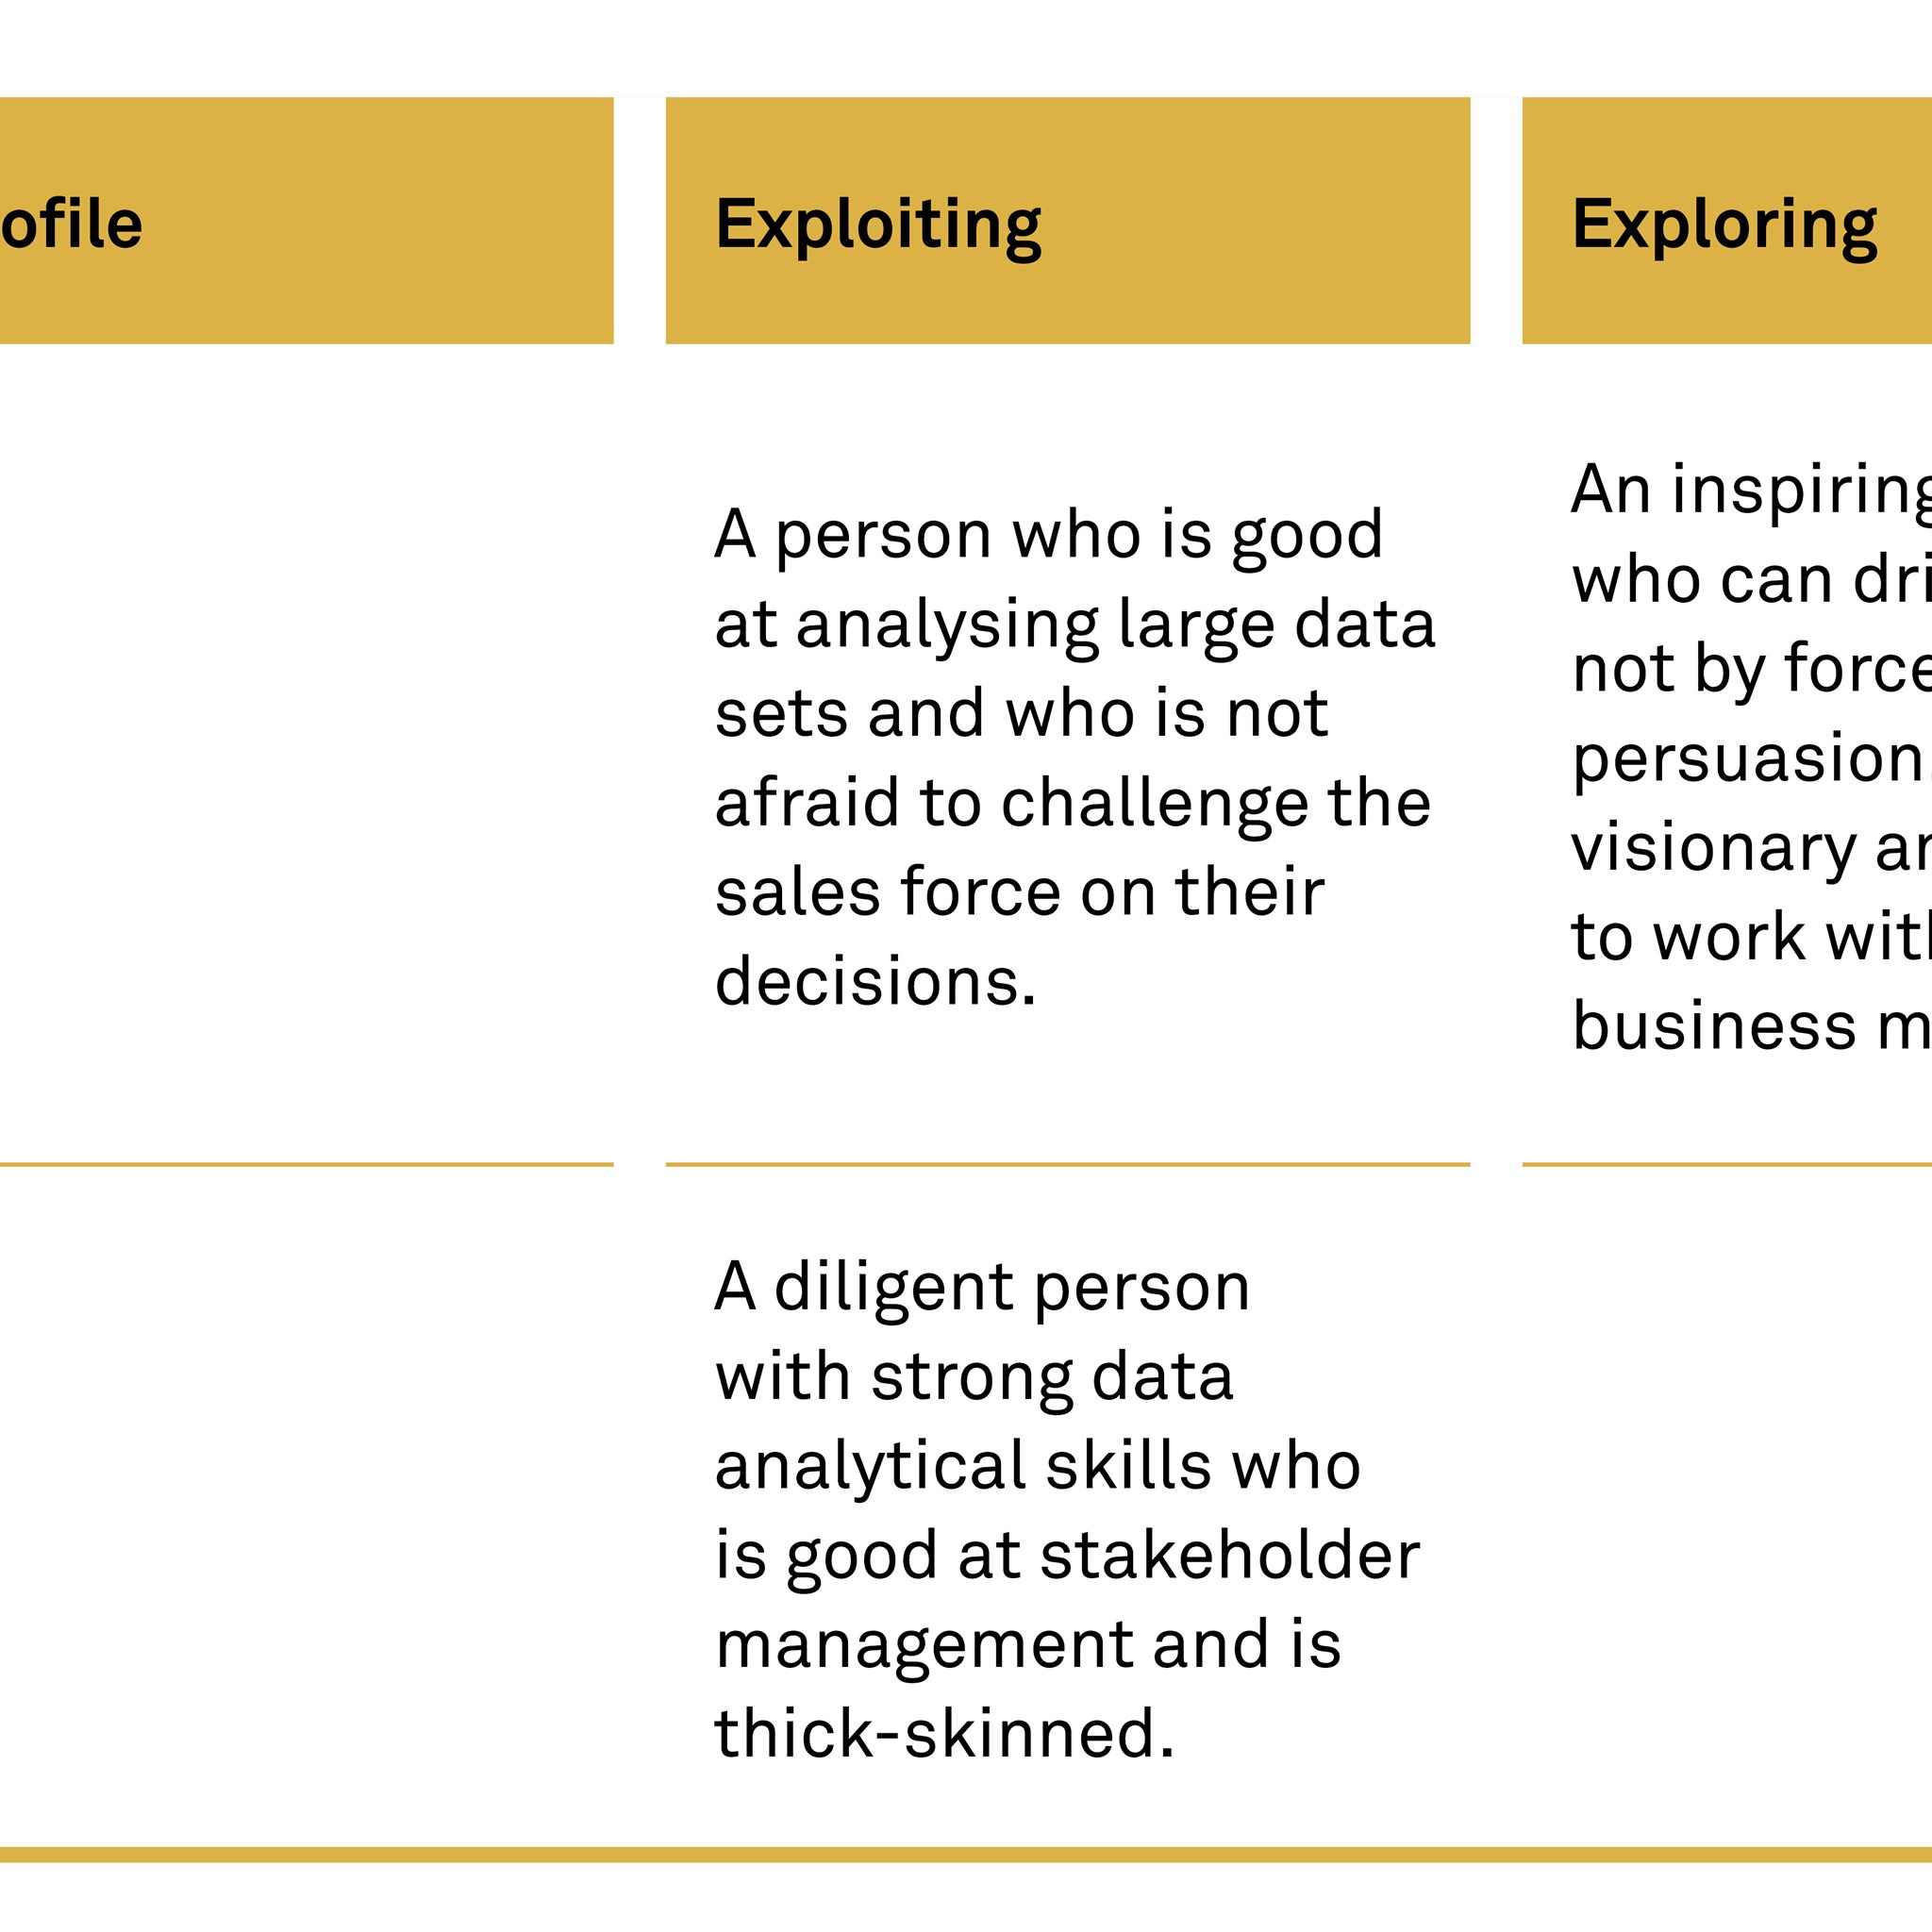 Employee profile, Exploiting and Exploring